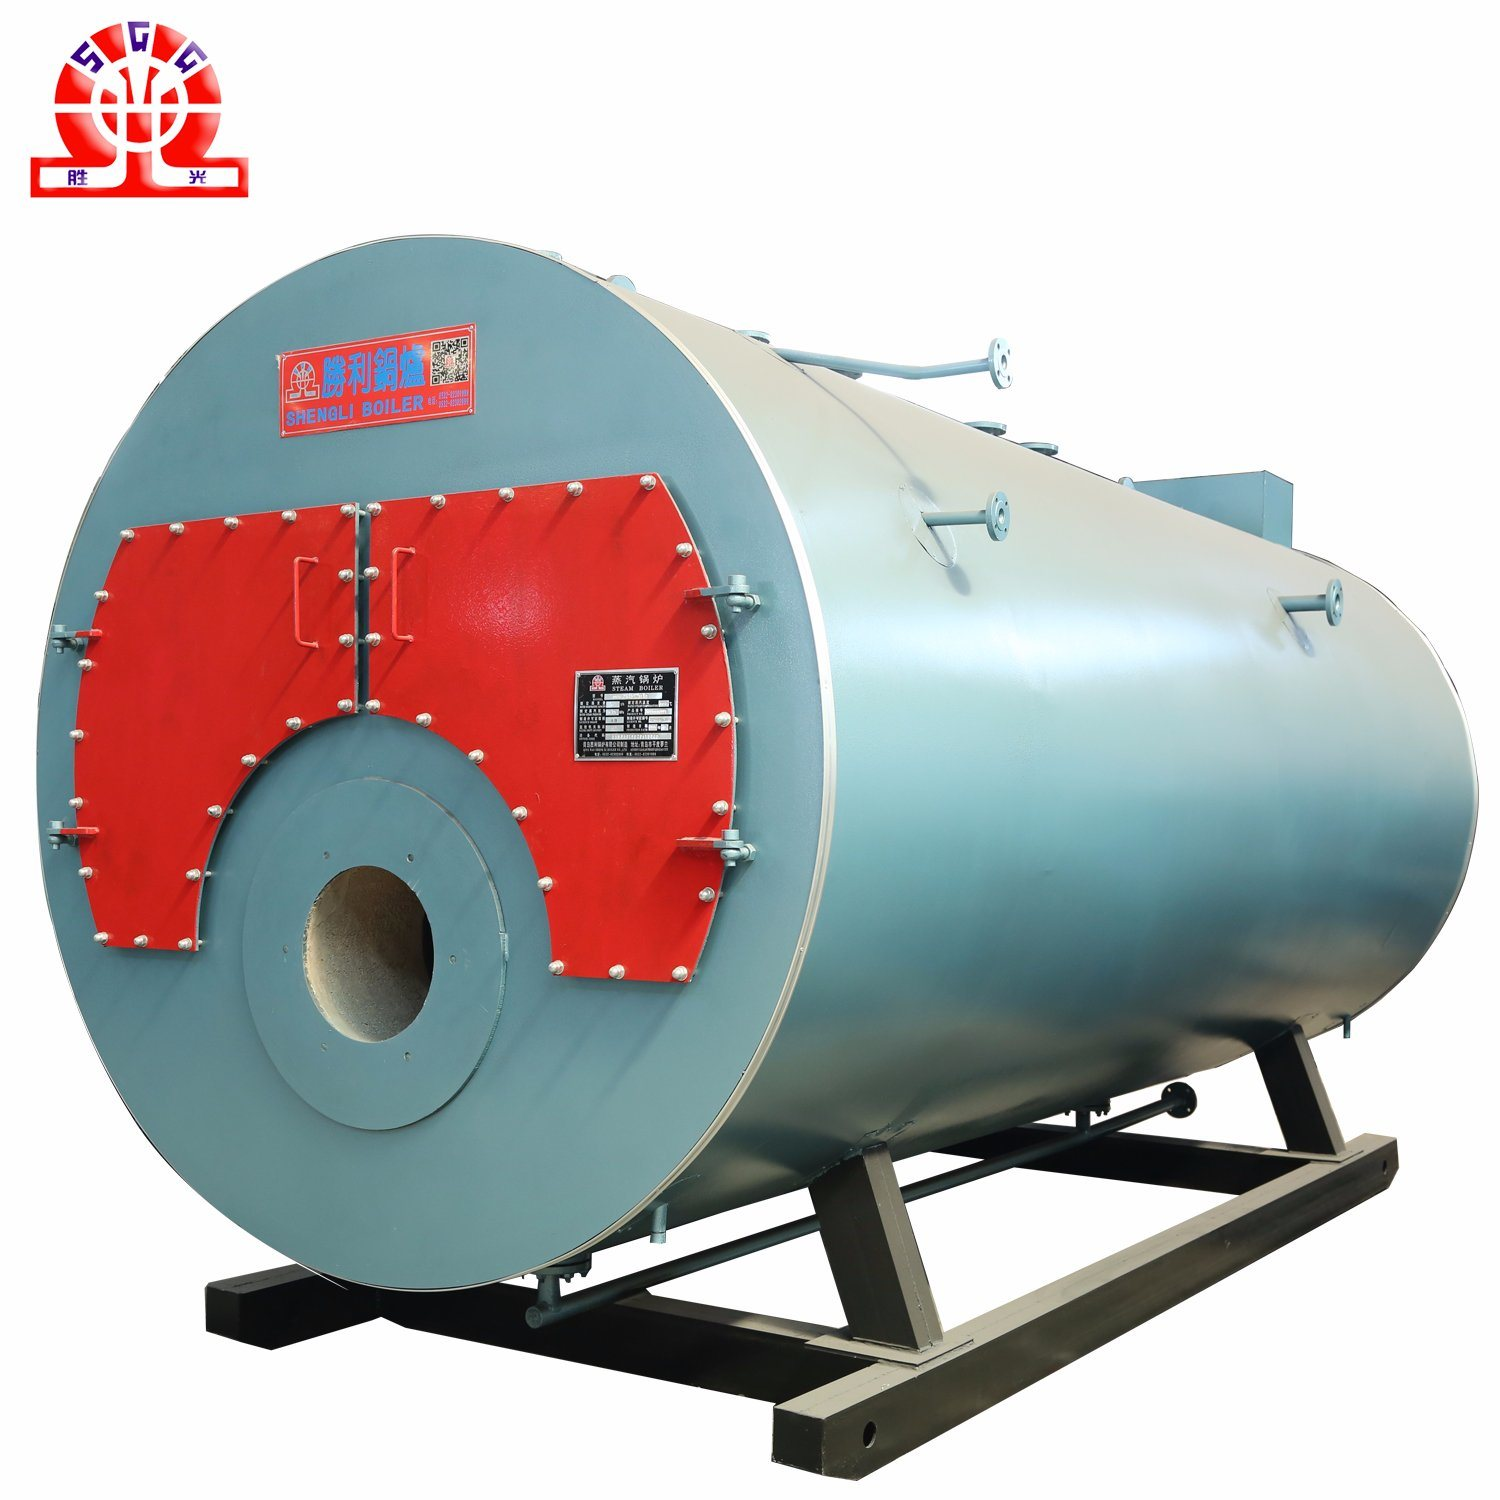 China Gas Oil Fired Heating Boiler for Dry Cleaning Machine - China ...